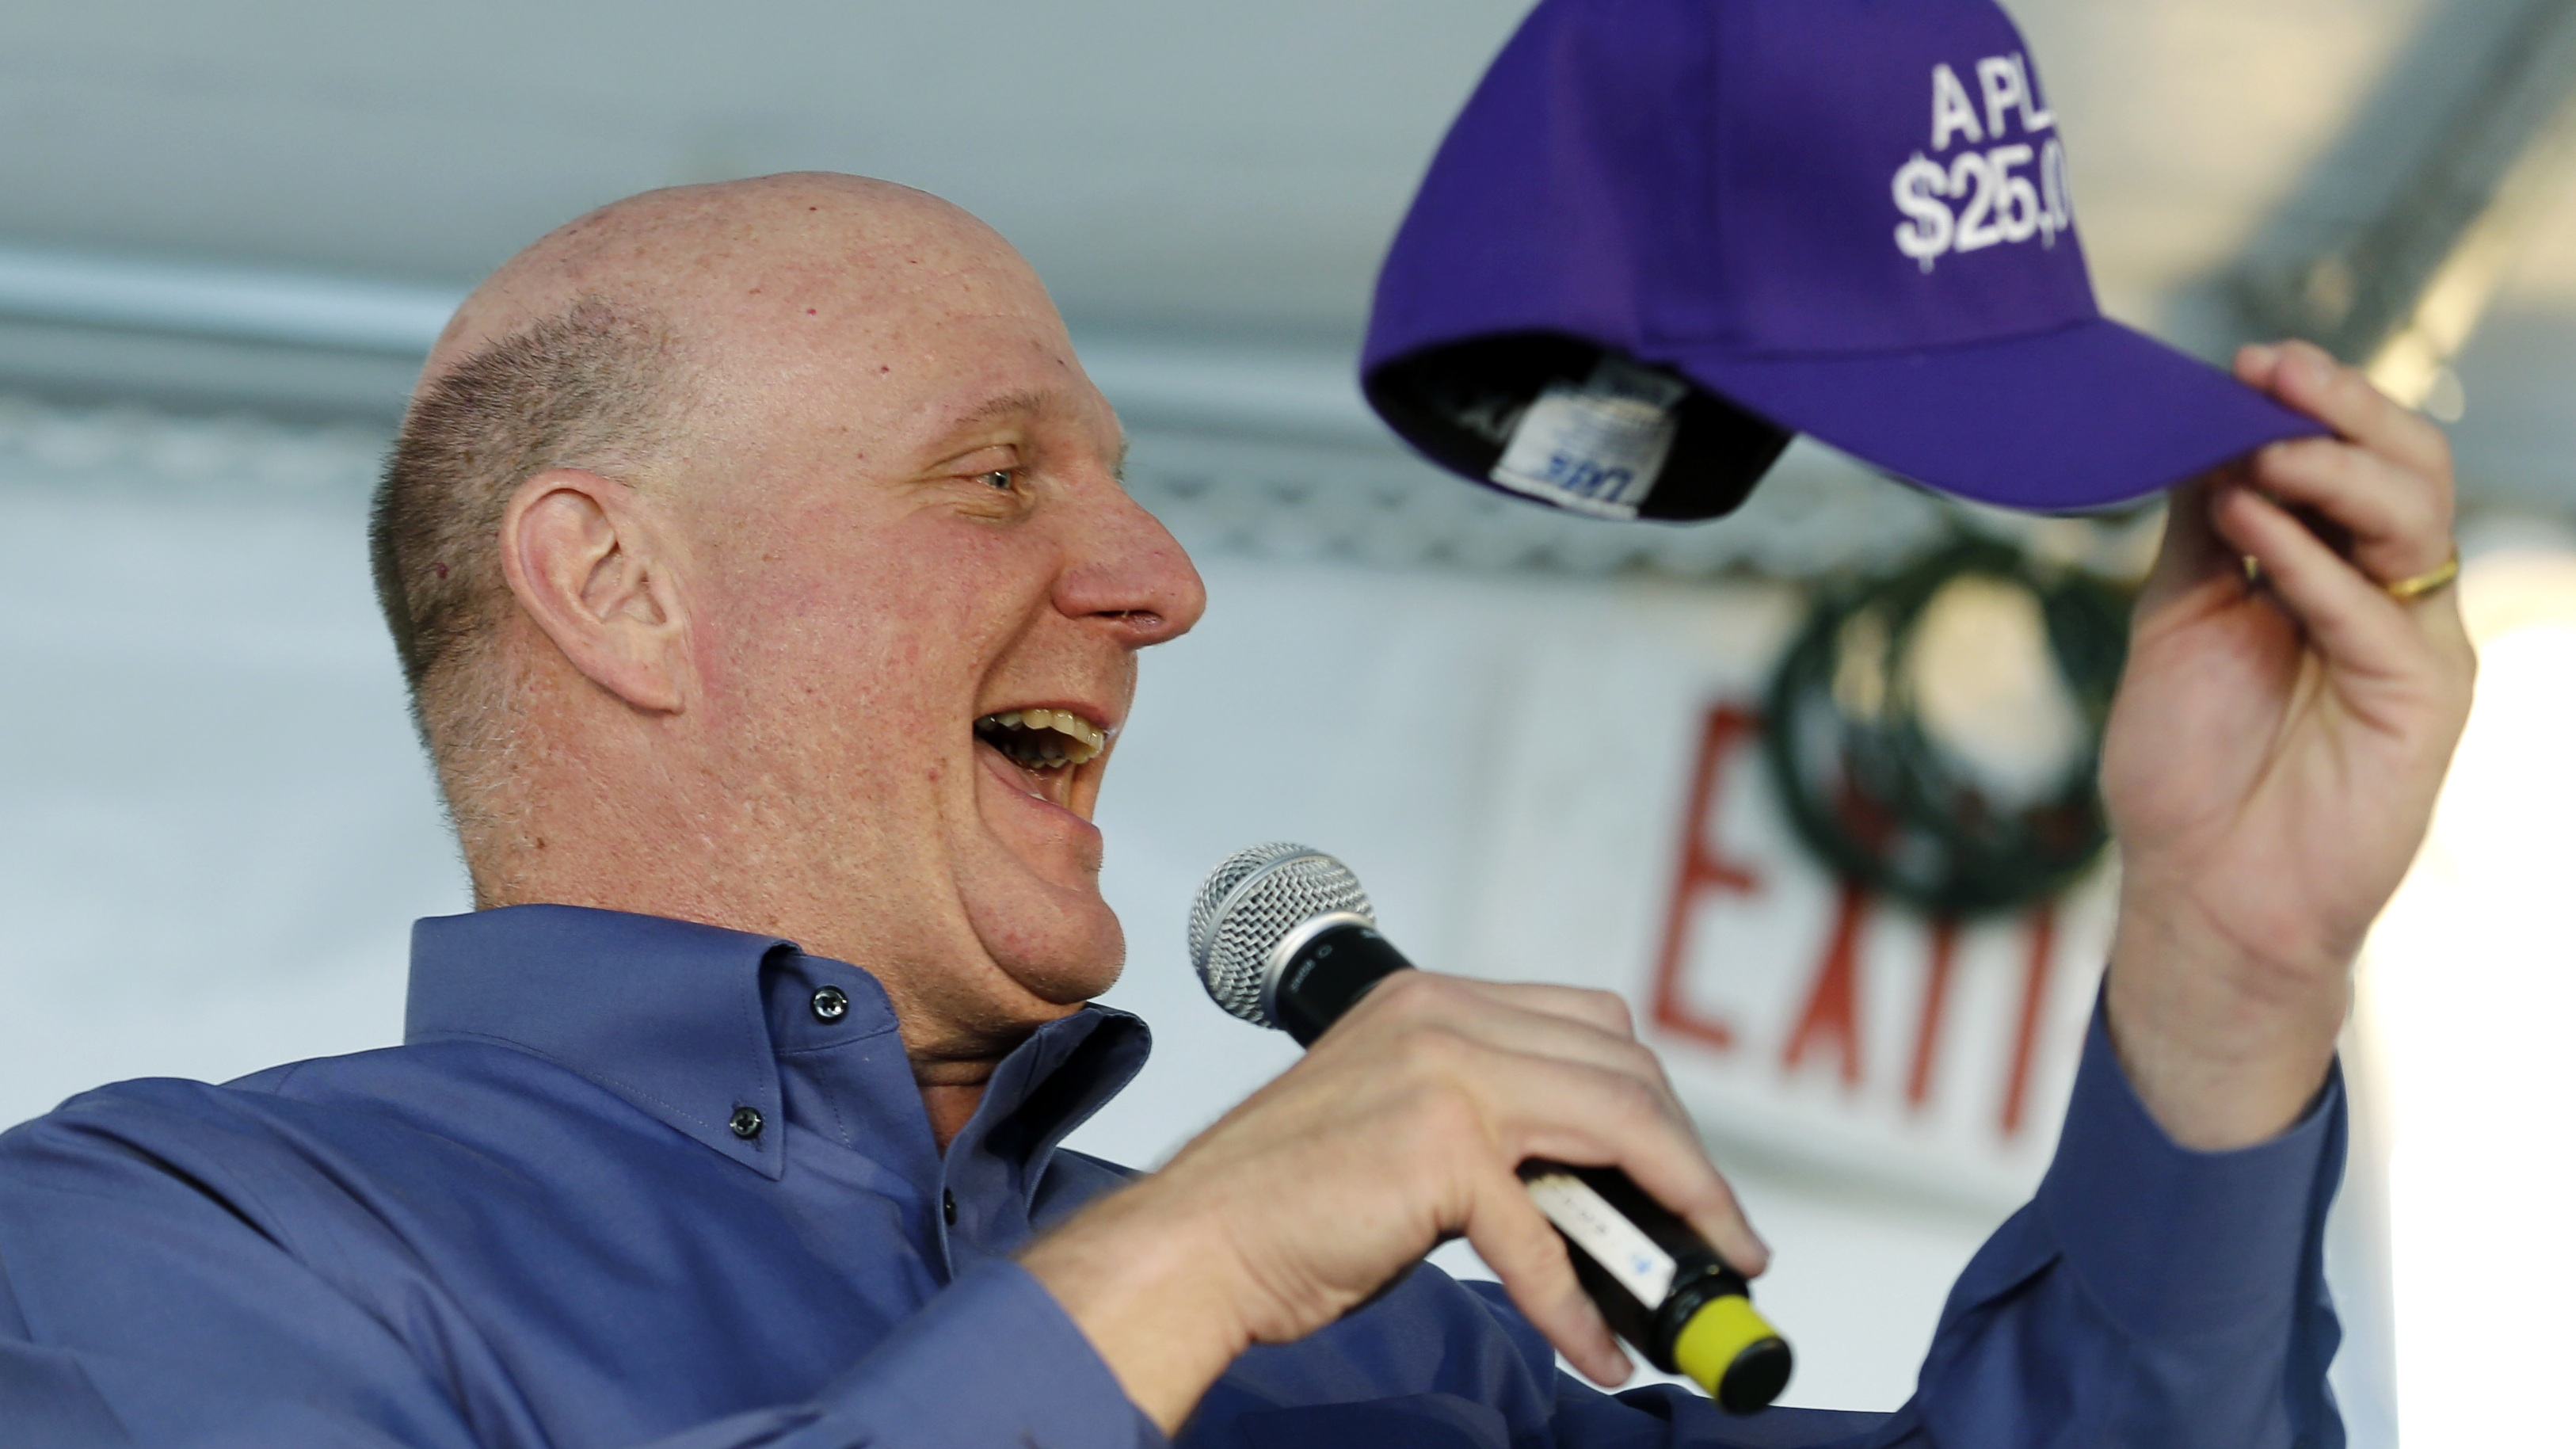 """Microsoft Chairman Steve Ballmer holds up a cap representing a $25,000 donation to the A PLUS youth program, Thursday, April 25, 2013, during a fundraising luncheon in Seattle. Ballmer, who is part of the group attempting to purchase the Sacramento Kings NBA basketball team and move them to Seattle, said Thursday he believes """"there will never be a better opportunity"""" than now to bring back professional basketball to the Puget Sound. Ballmer said he made the donation to give the cap to Chris Hansen, a hedge-fund manager who is heading up the effort to purchase the Kings. (AP Photo/Ted S. Warren)"""